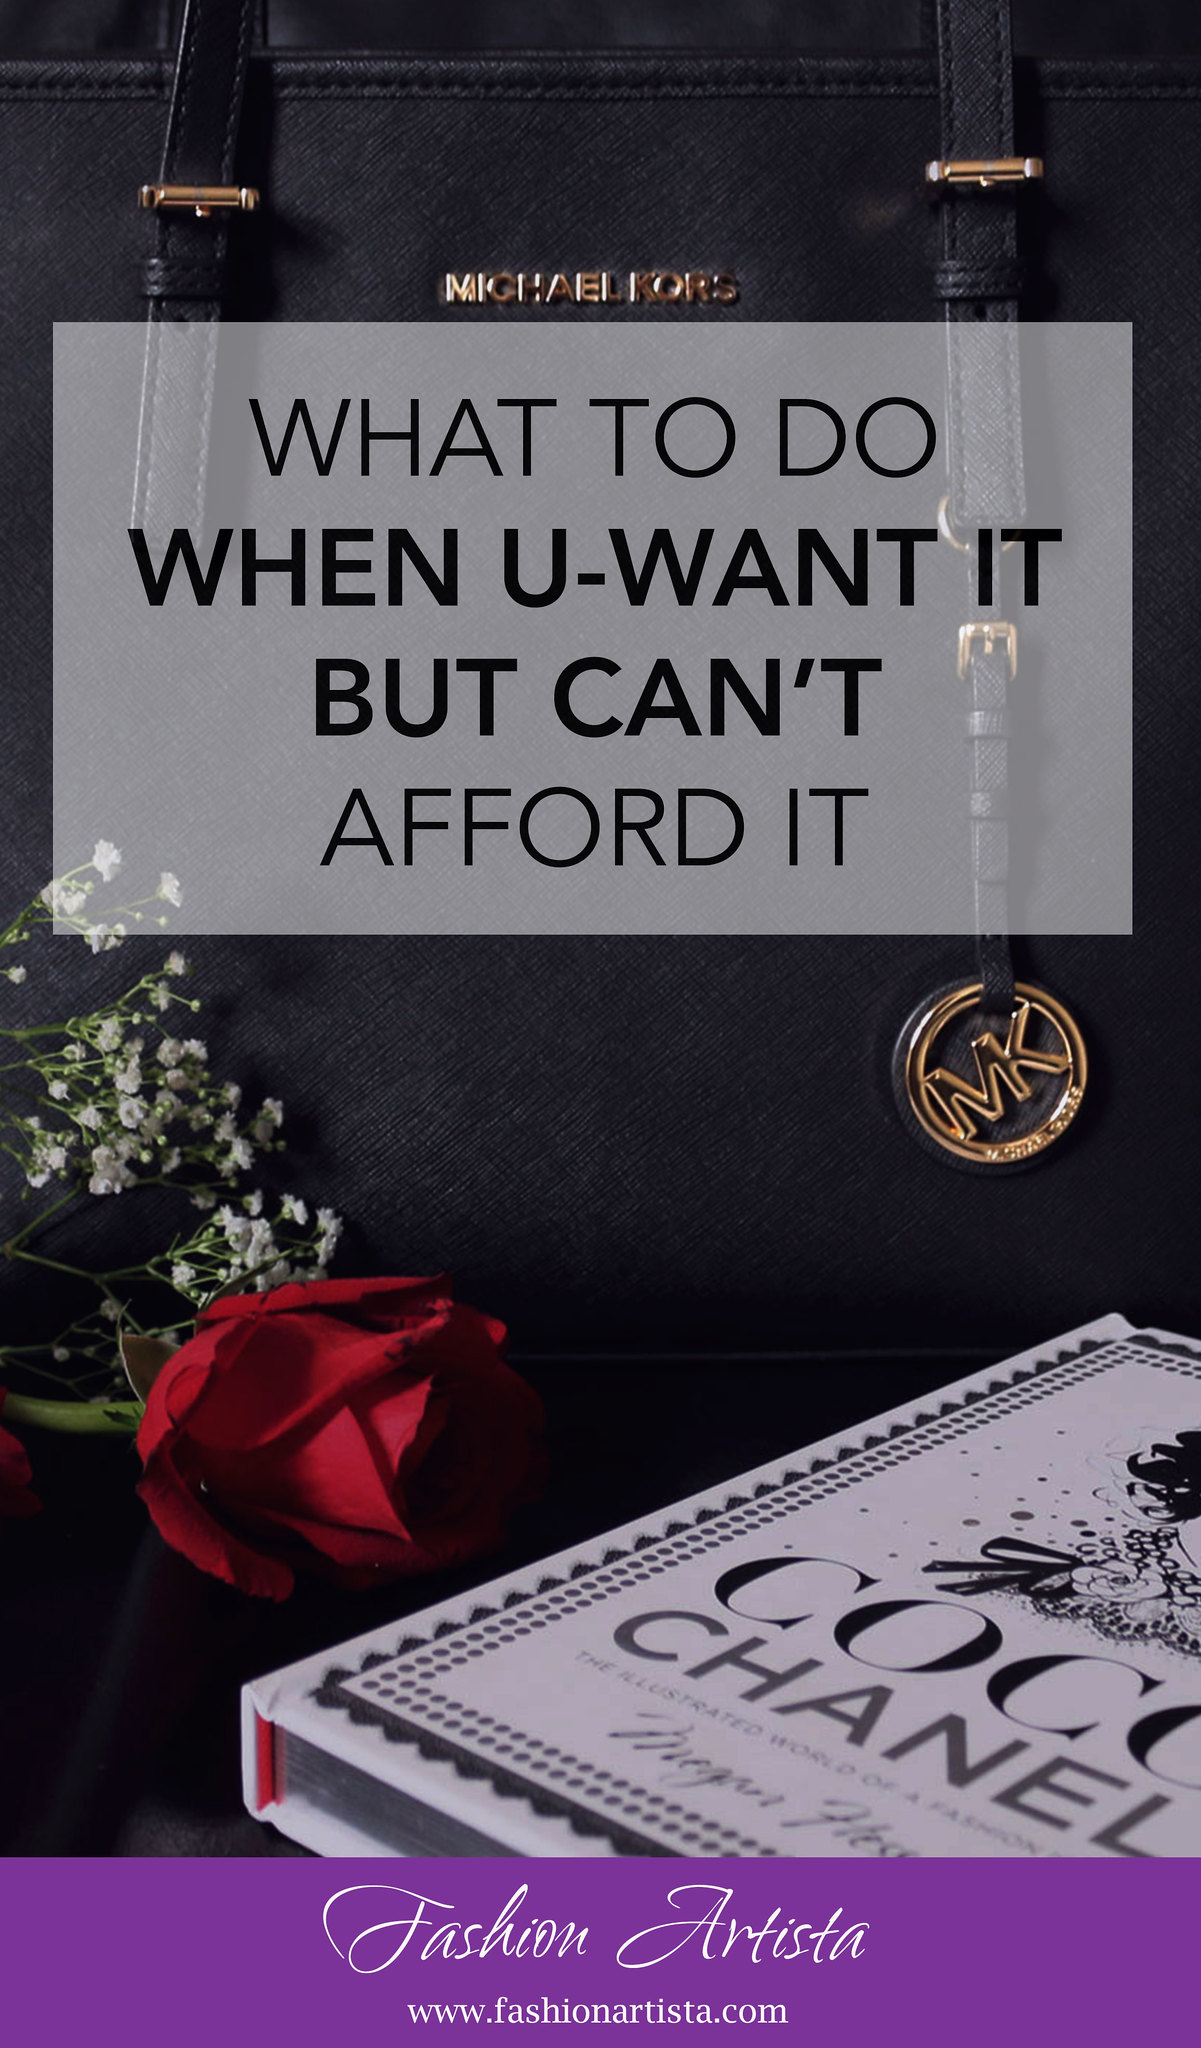 What to do when you want it but can't afford it - www.fashionartista.com